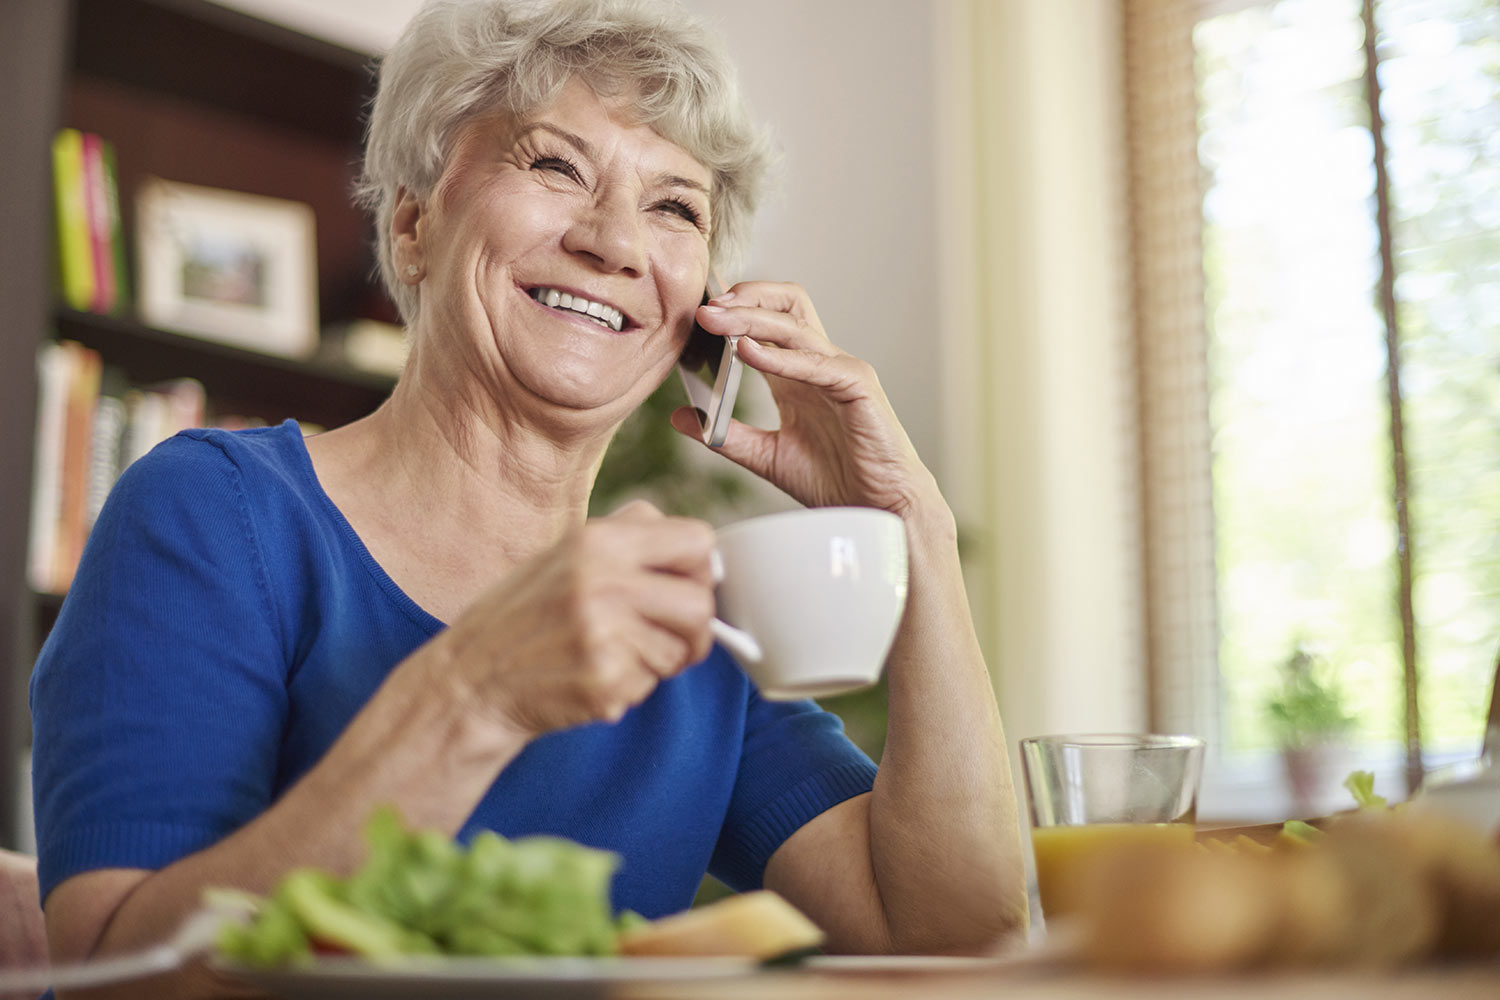 Mature lady on telephone with cup of tea